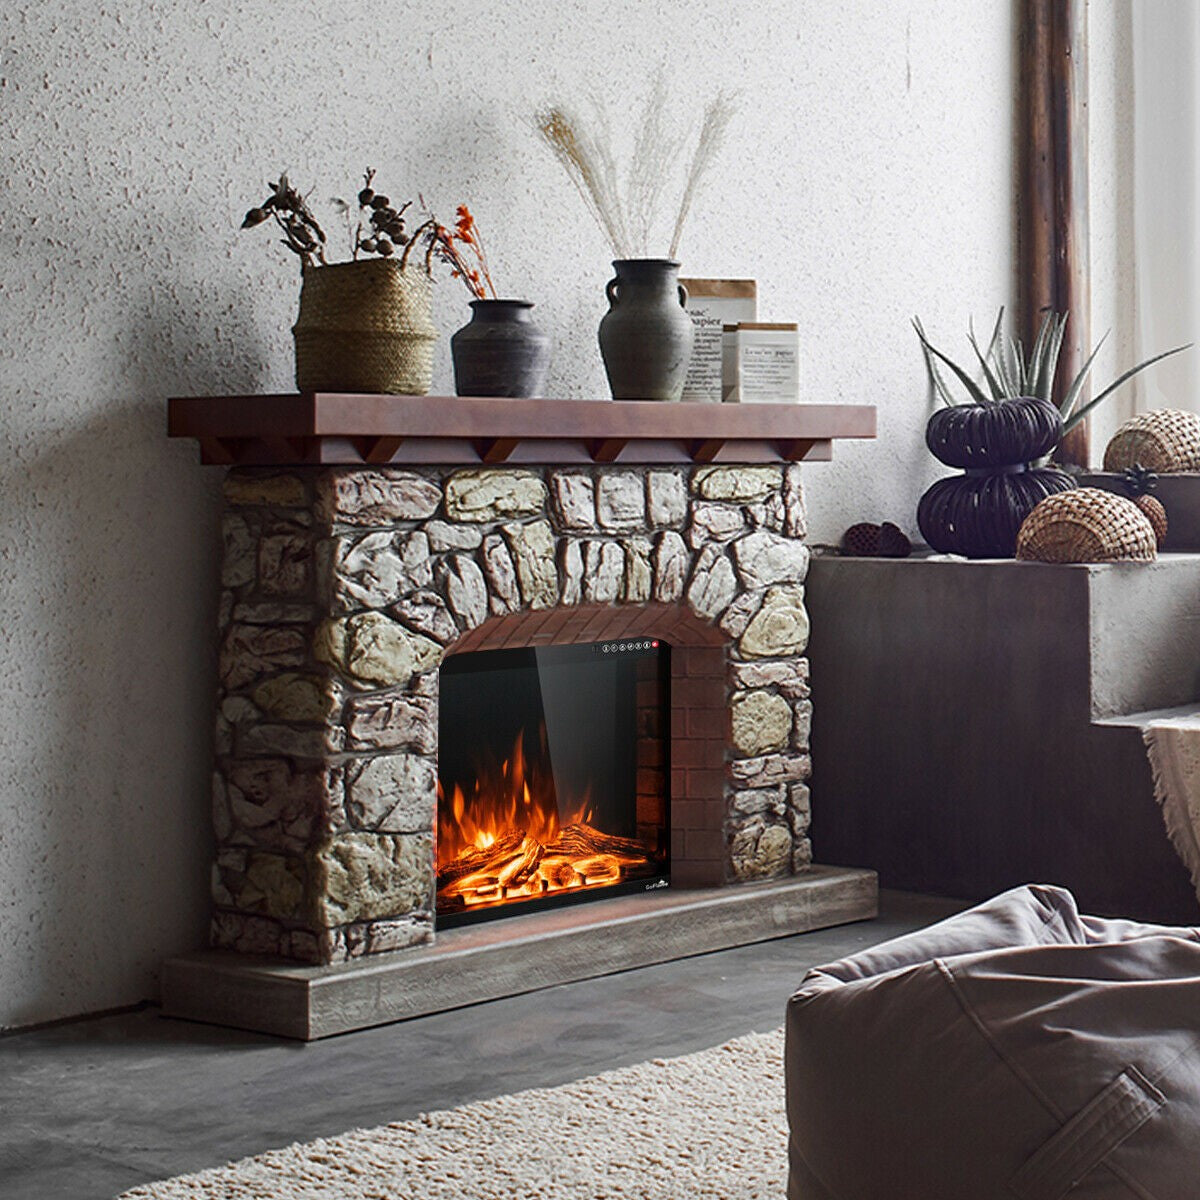 Premium Embedded Fireplace Insert Electric Wall Space Heater 1500W 26in